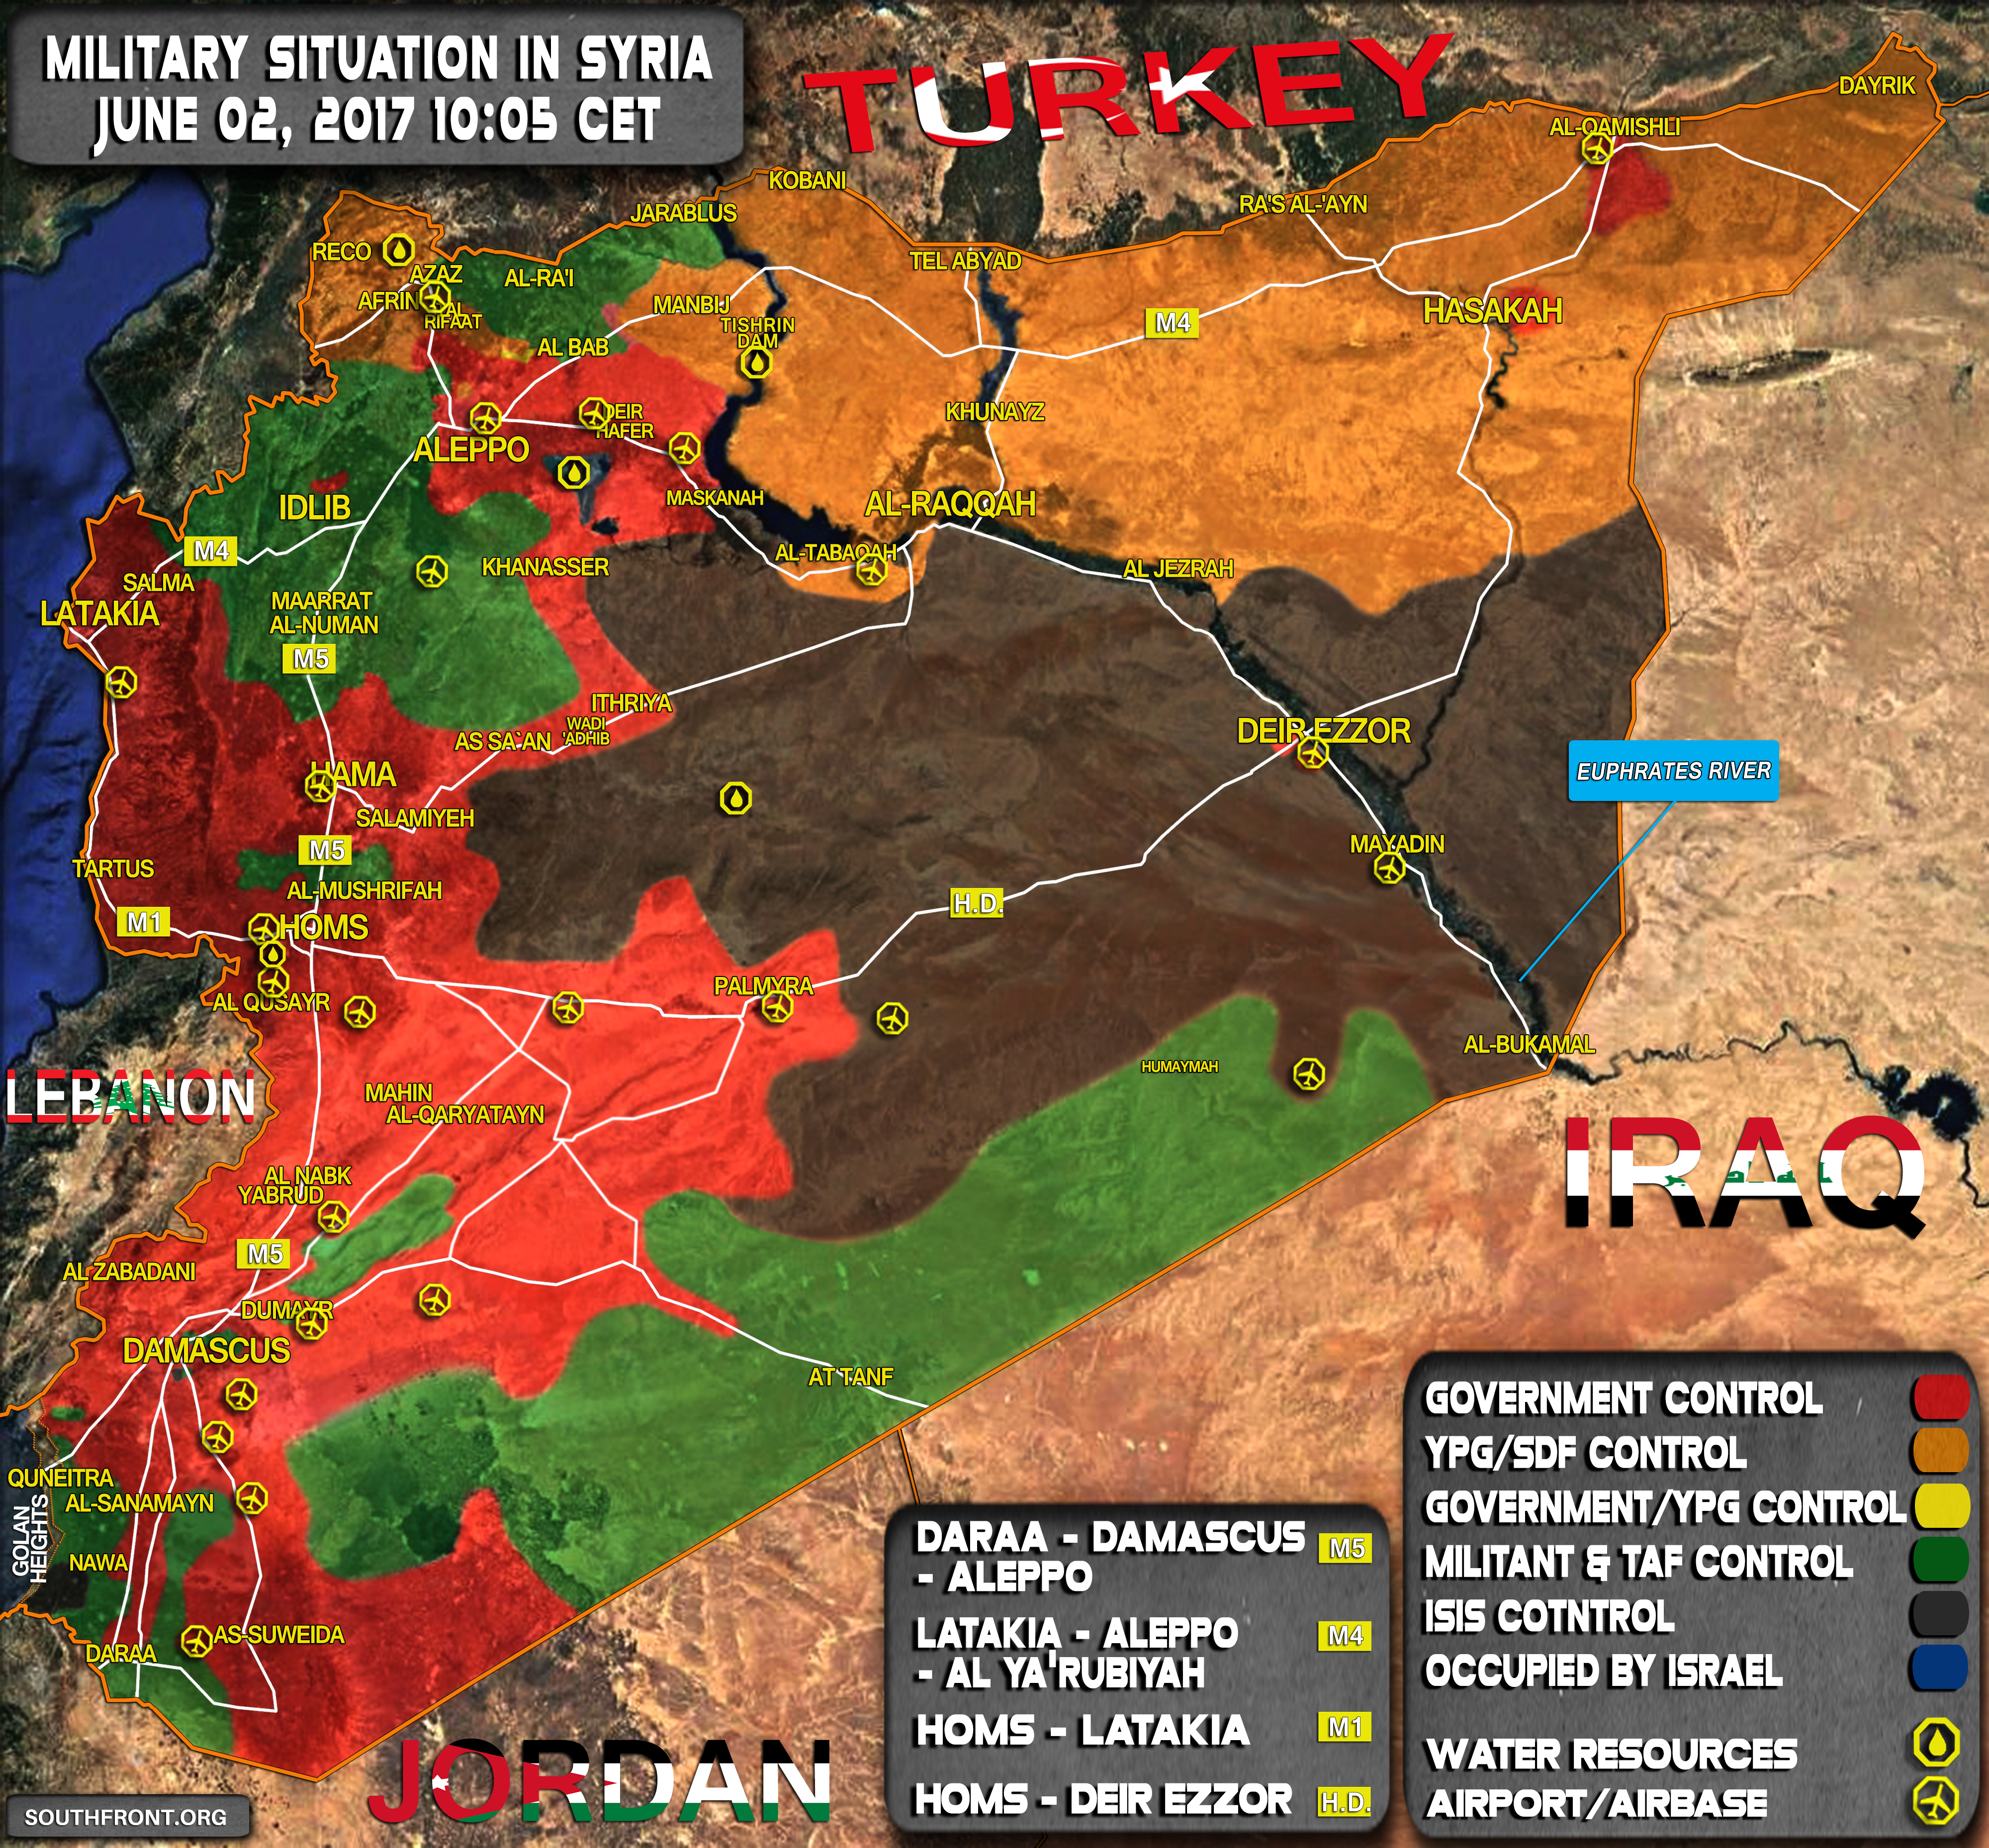 https://southfront.org/wp-content/uploads/2017/06/02june_10_05_syria_war_map.jpg